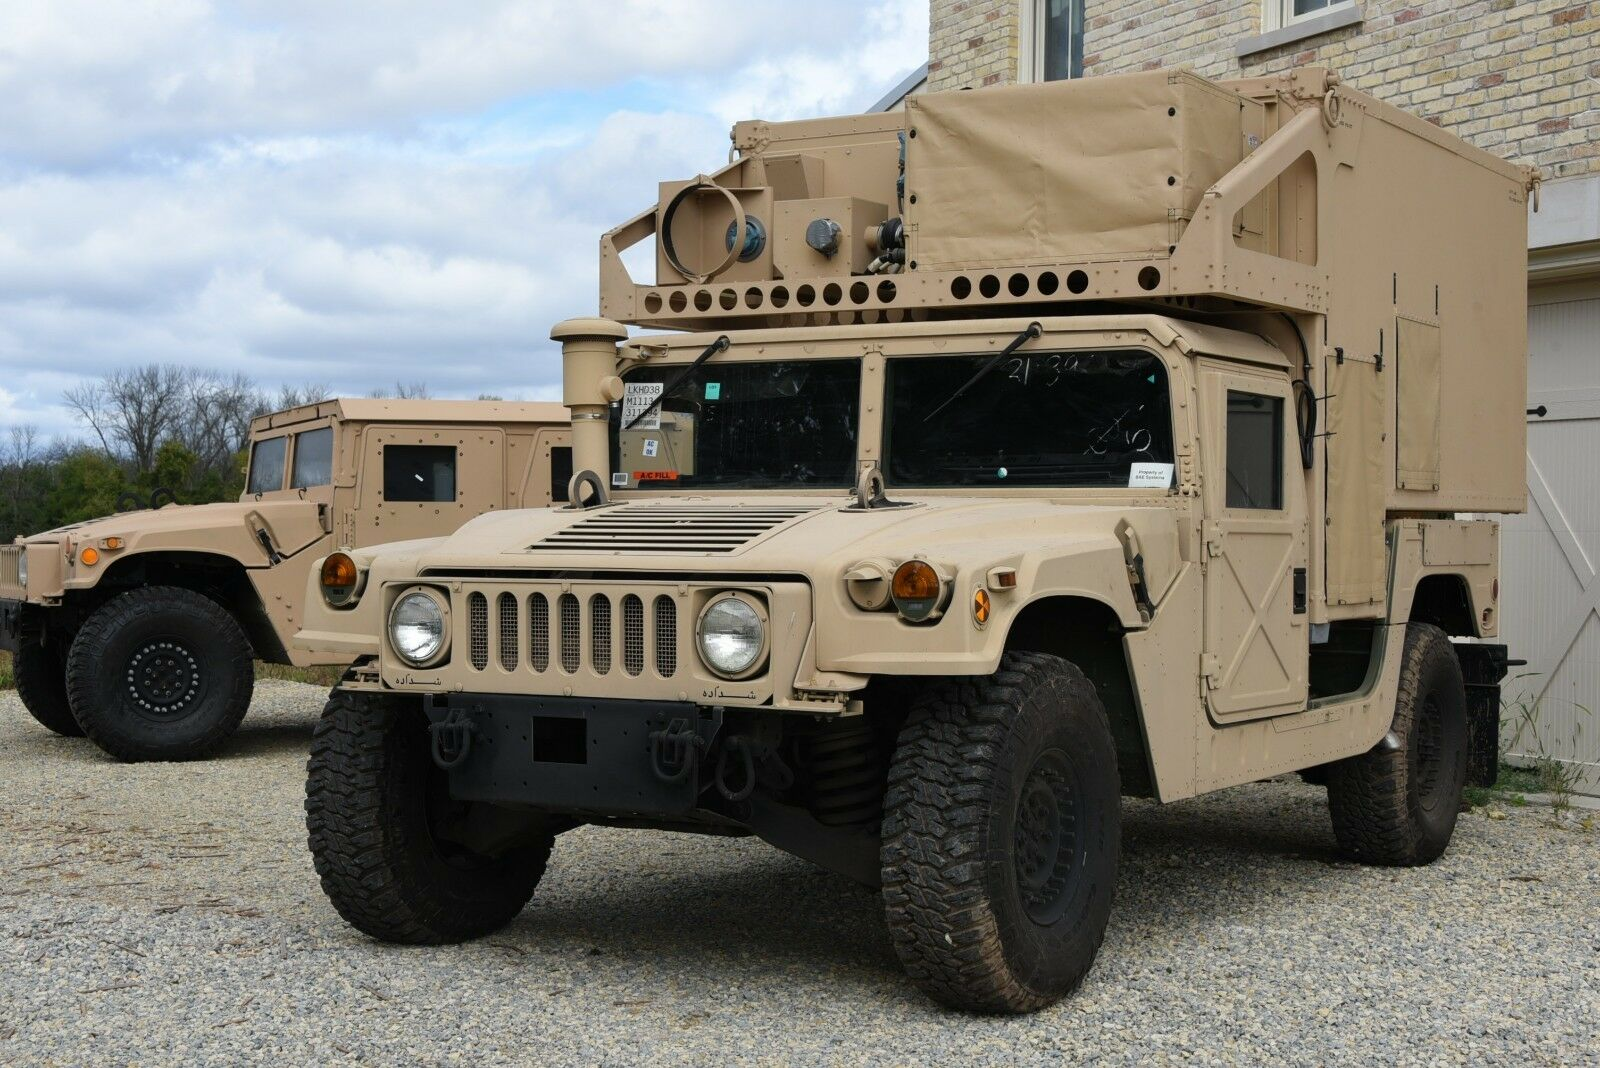 1980 Hummer H1 Blair Outlan 901-378-8877 2008 M1113 Coms/Drone truck 37km Brand new Turbo/overdrive/ ECV HMMWV Humvee